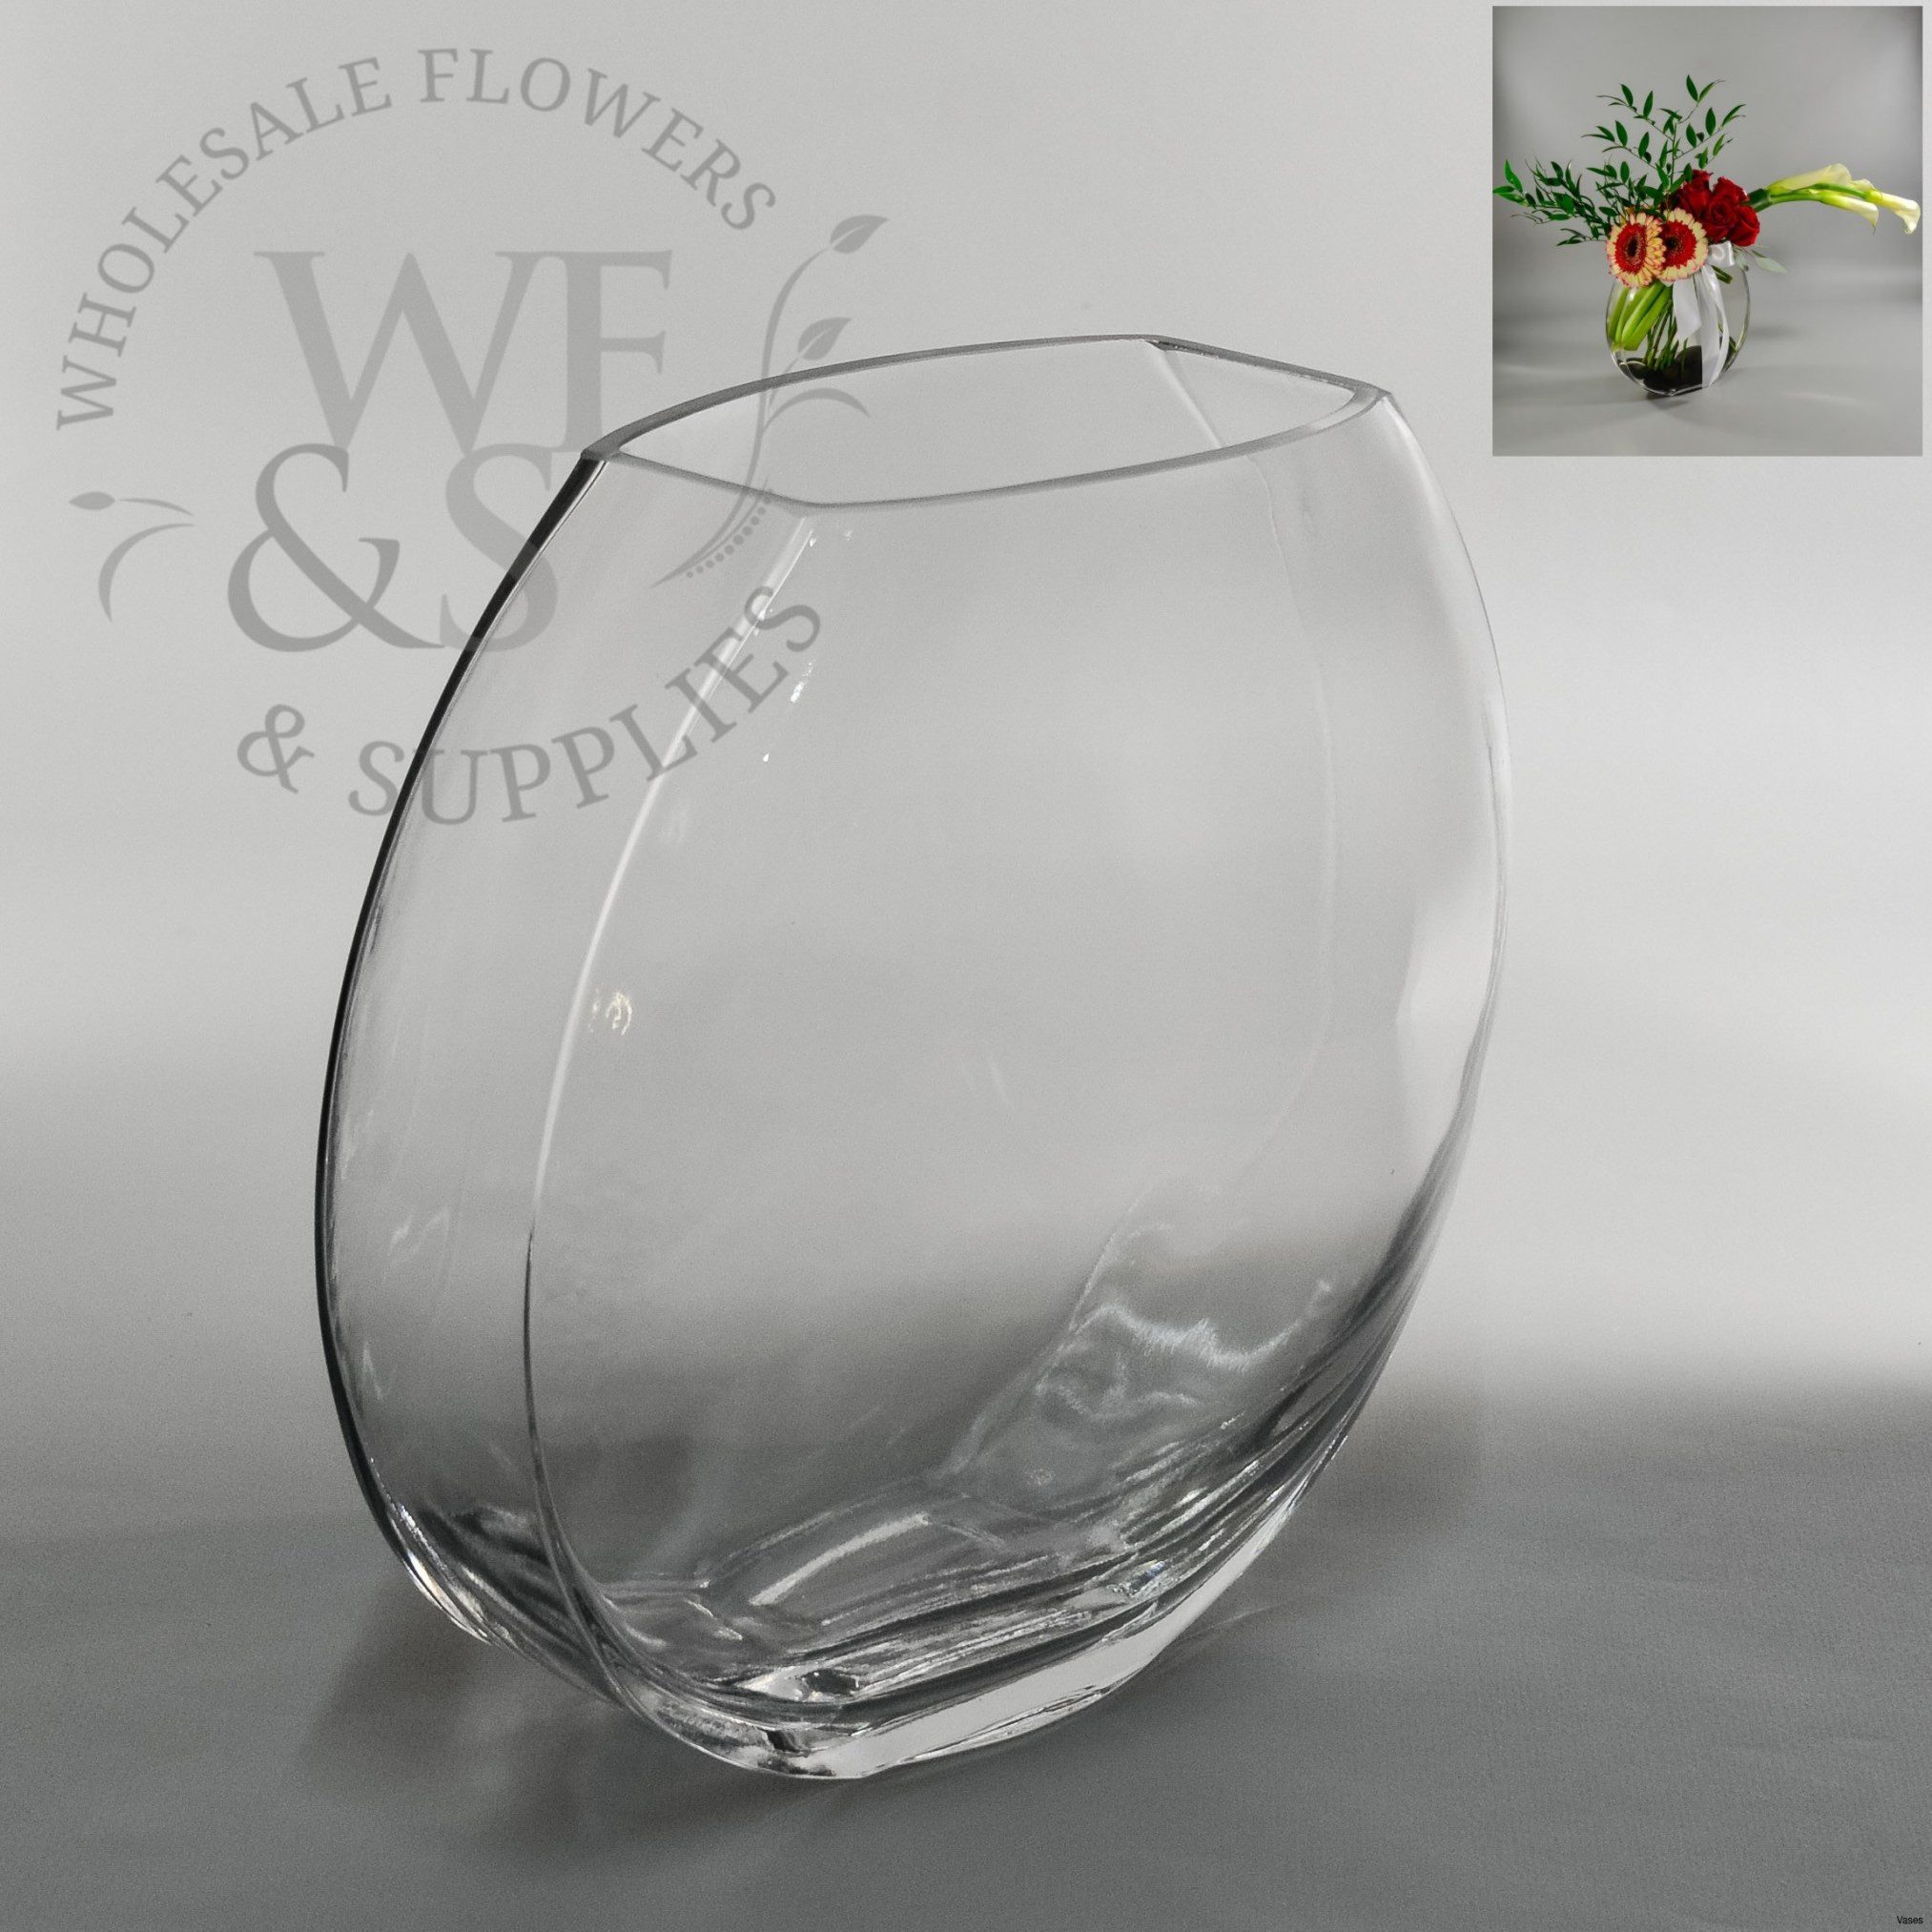 Clear Glass Fish Vase Of Glass Fish Vases Image Glass Fish Bowl Decoration Aquarium Design In Glass Fish Bowl Decoration Aquarium Design Vbw0916 Hwh Vases